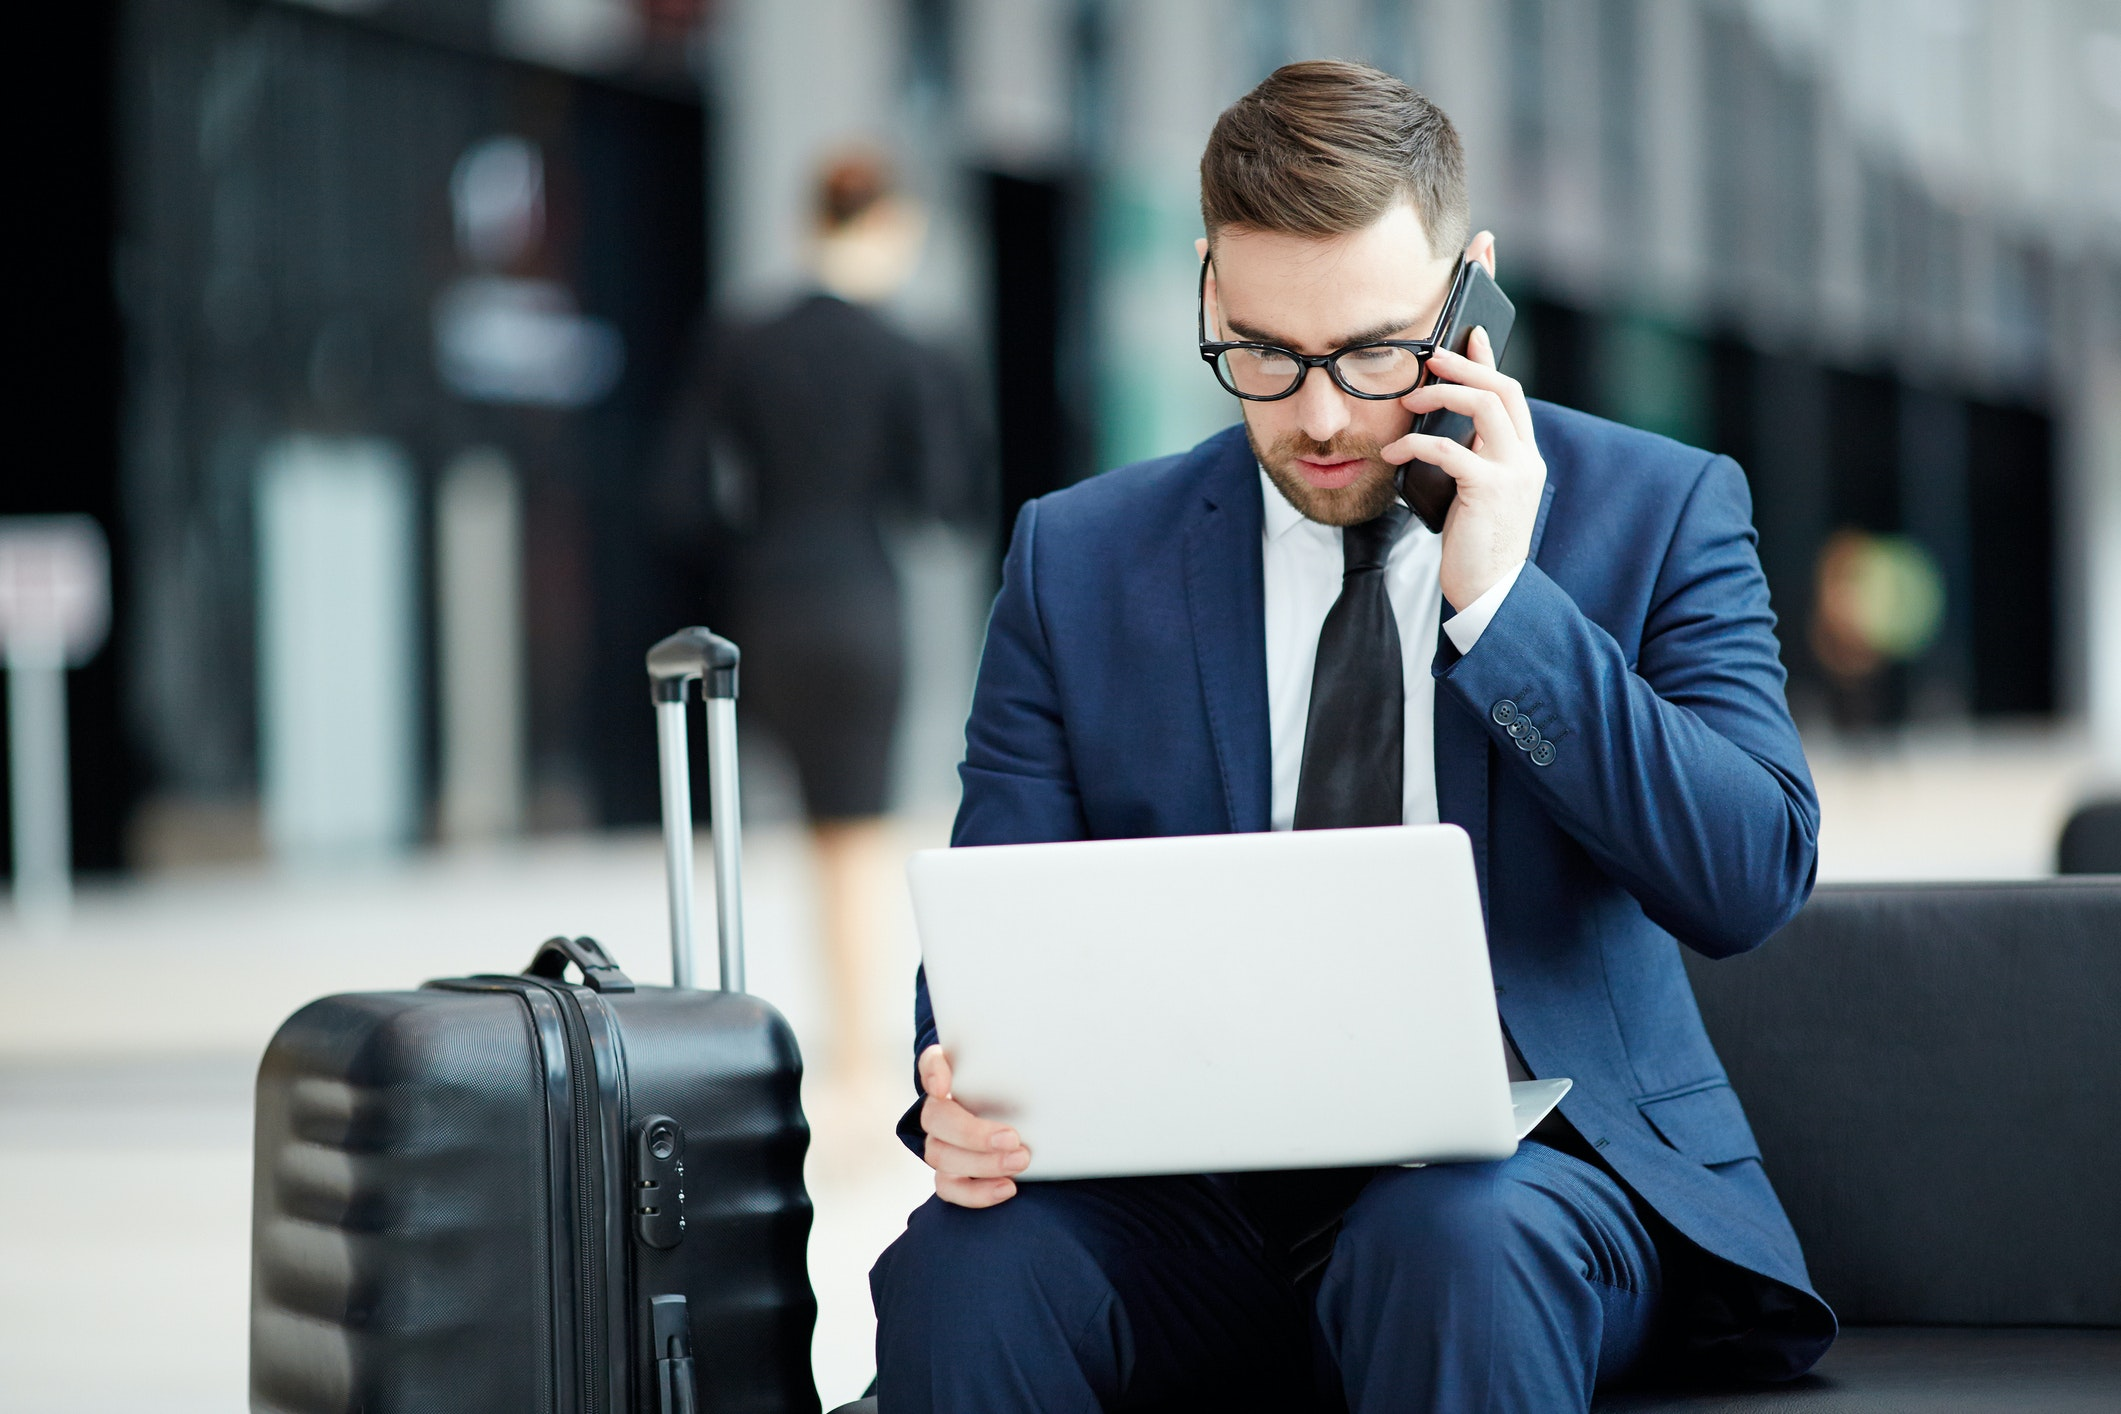 The Future of Travel Part 2: Five Predictions for Post-Covid Business Travel And Expense Management